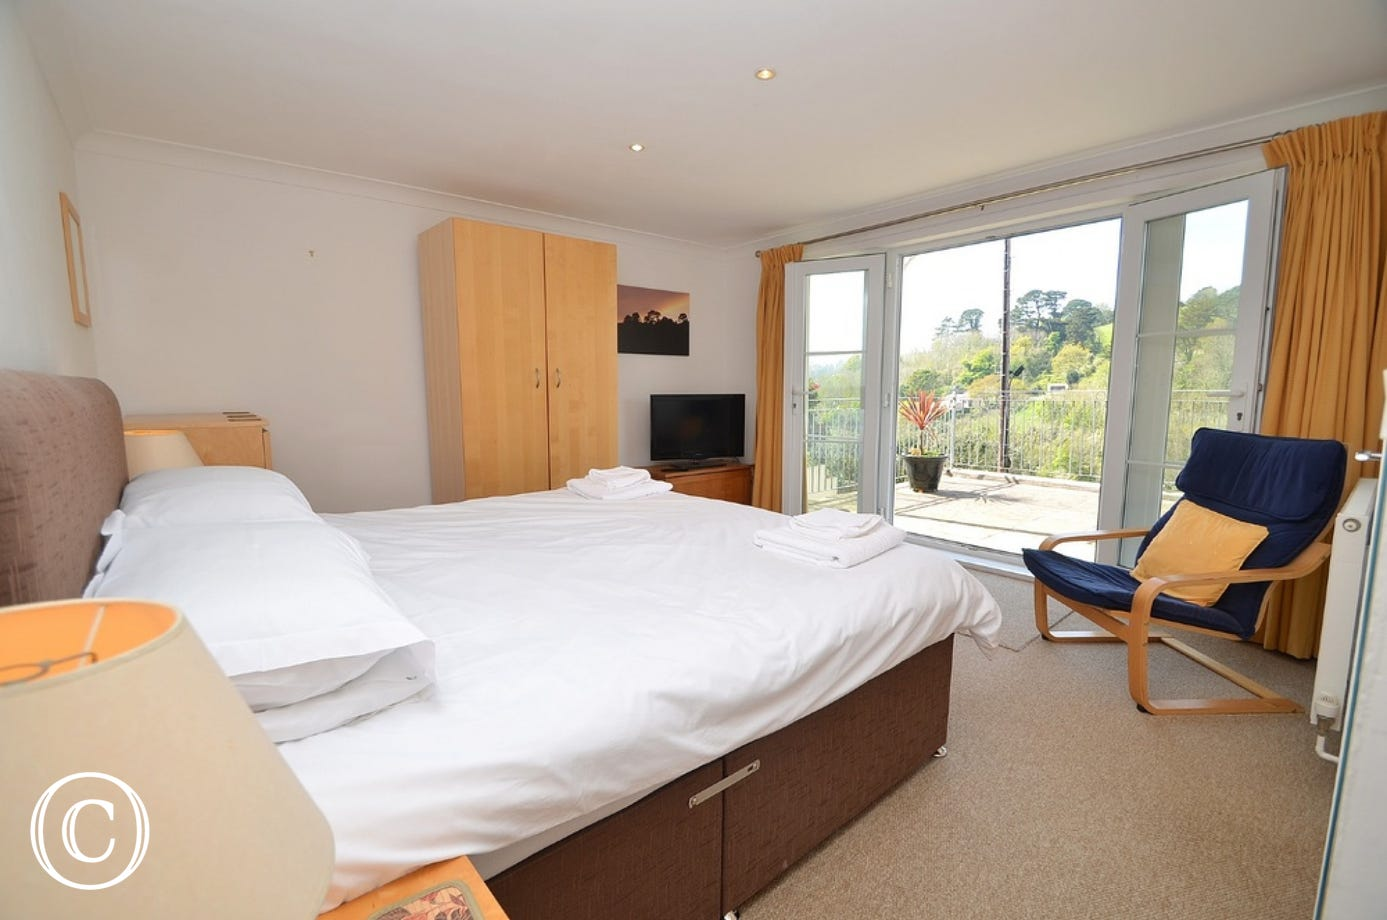 Master Bedroom: Super-king size bed, double wardrobe, chest of drawers and chair, modern white en-suite shower room, slate floor and double patio doors onto terrace area.